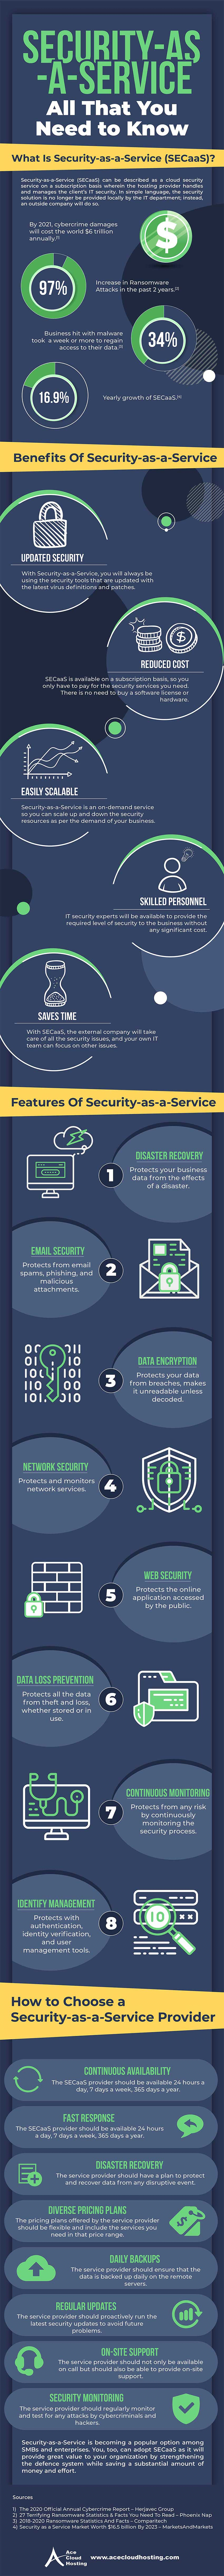 Security-as-a- Service: All That You Know [Infographic]